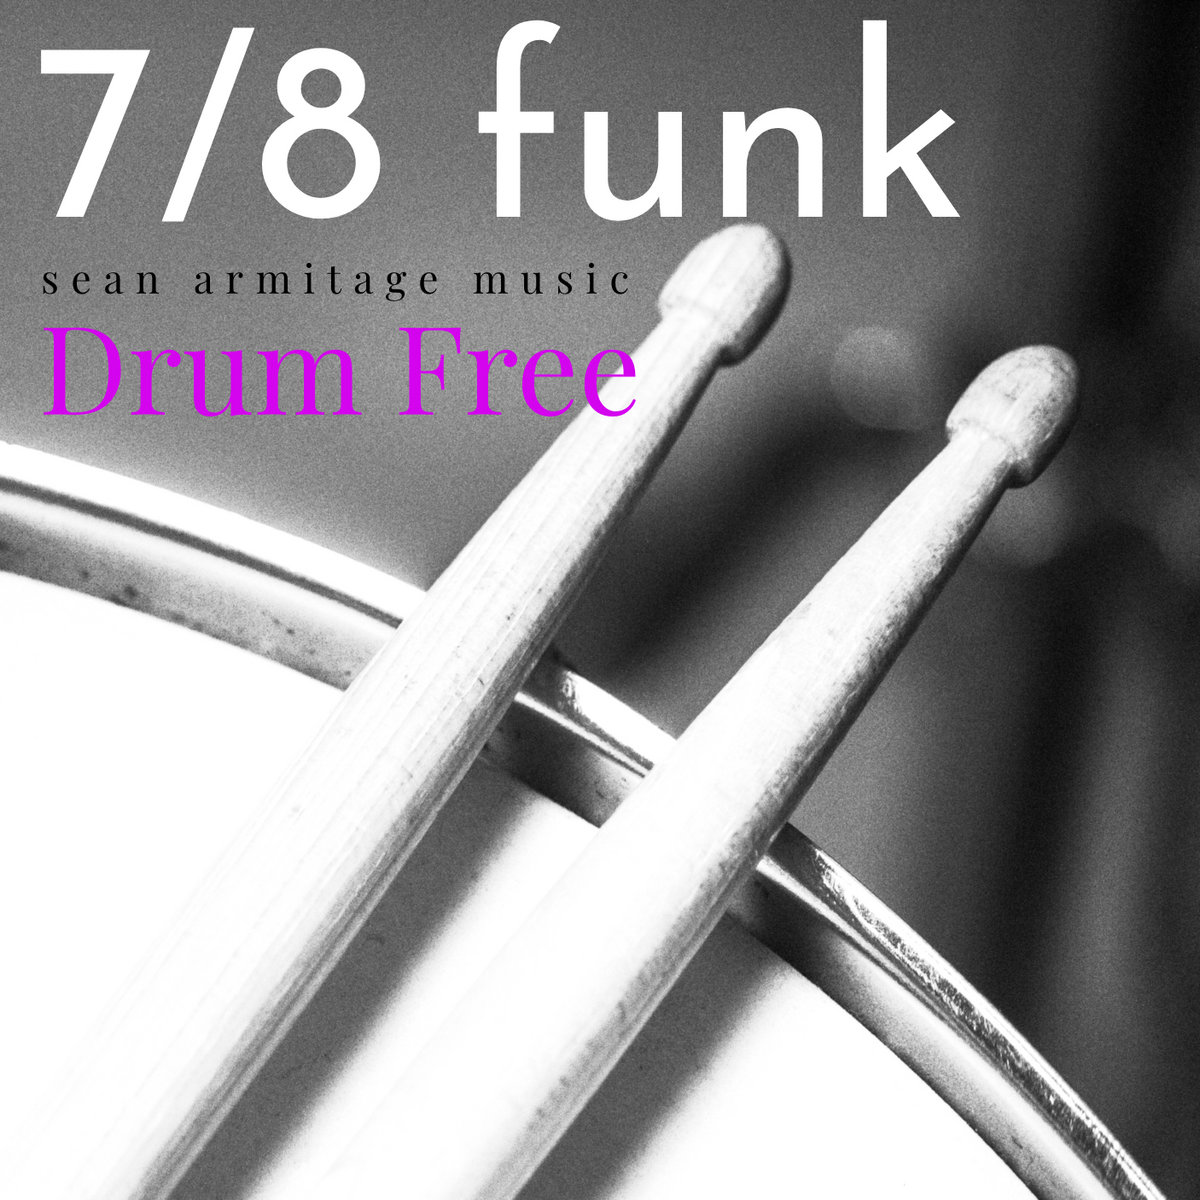 Drumless Backing Track Funk in 7/8 Time (120 BPM) | Sean